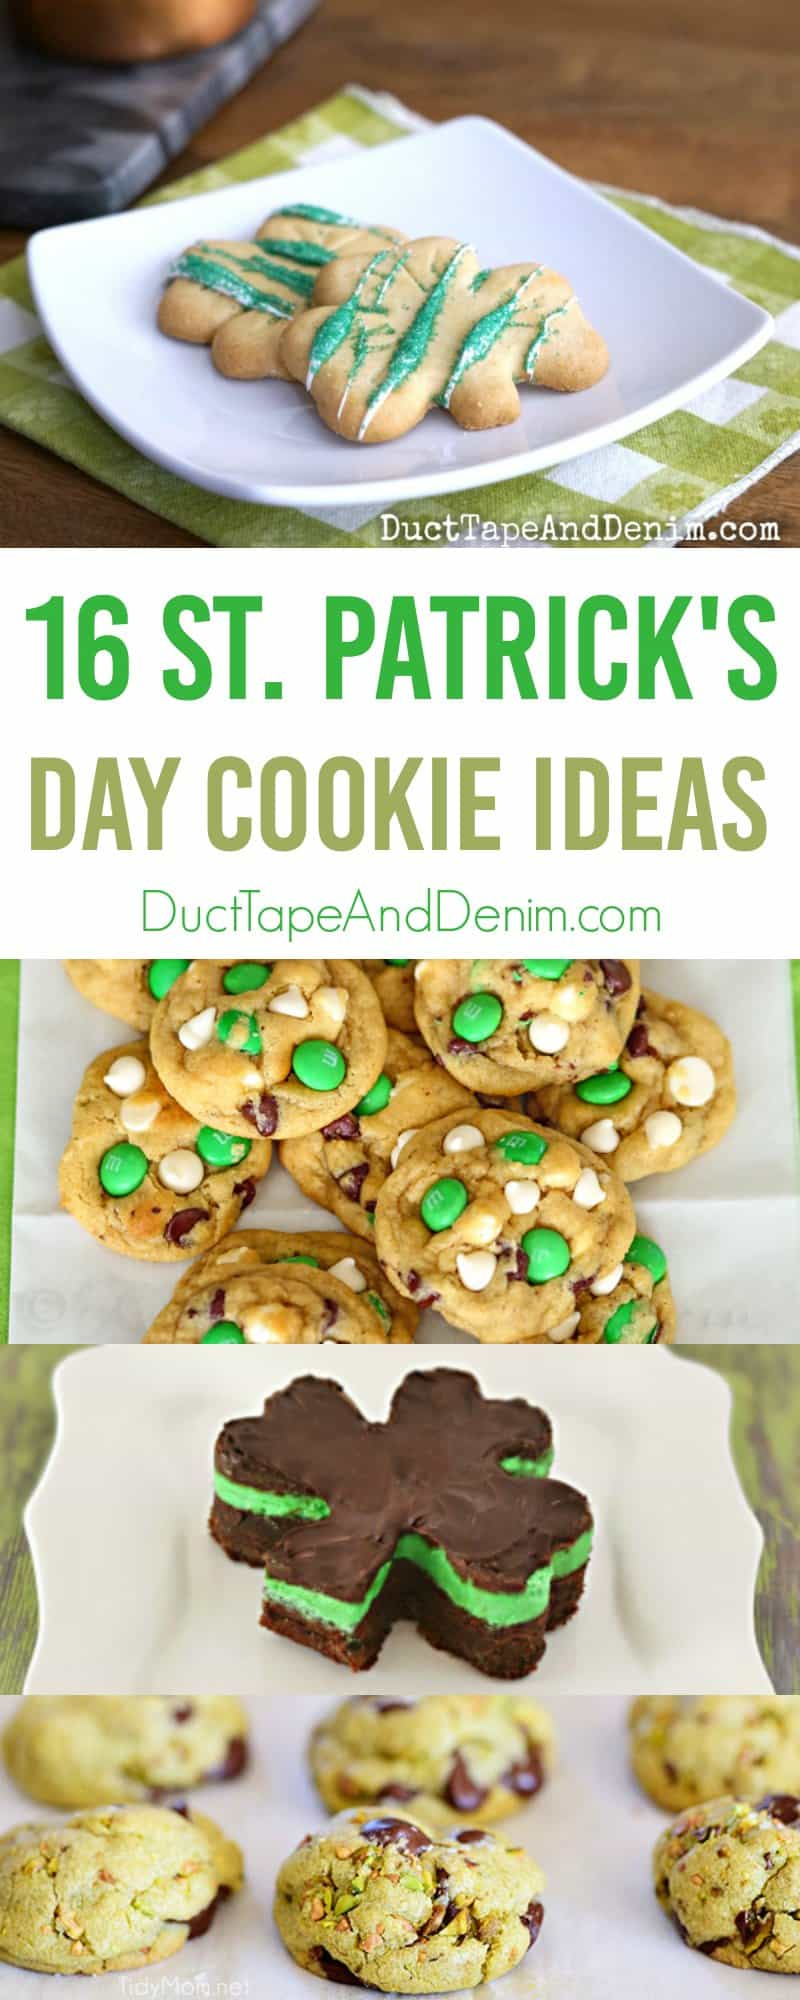 16 St Patrick's Day Cookie Ideas on DuctTapeAndDenim.com